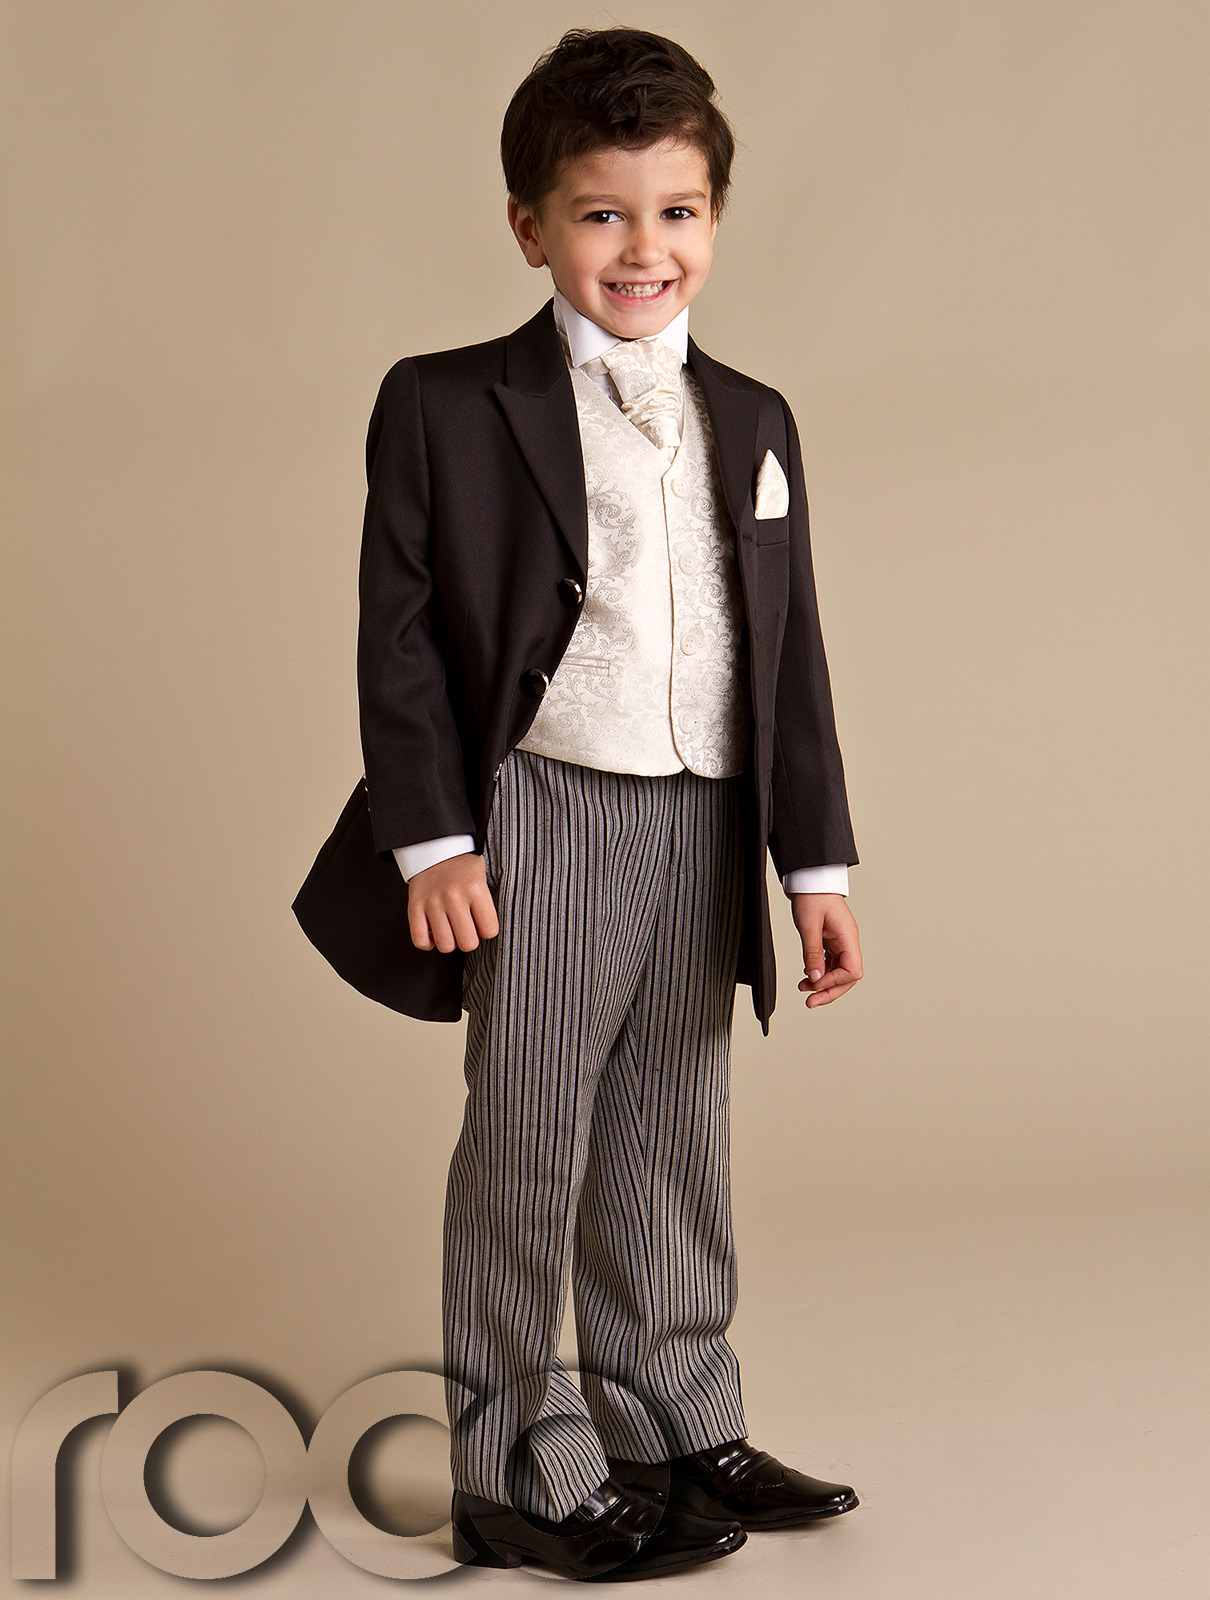 We have finest selection of Boy's Suits needed for a Wedding, First Communion, Holiday Party or other formal event. Boys Suits at humorrmundiall.ga are perfect for your Baby Boy, Toddler or Little Boy.